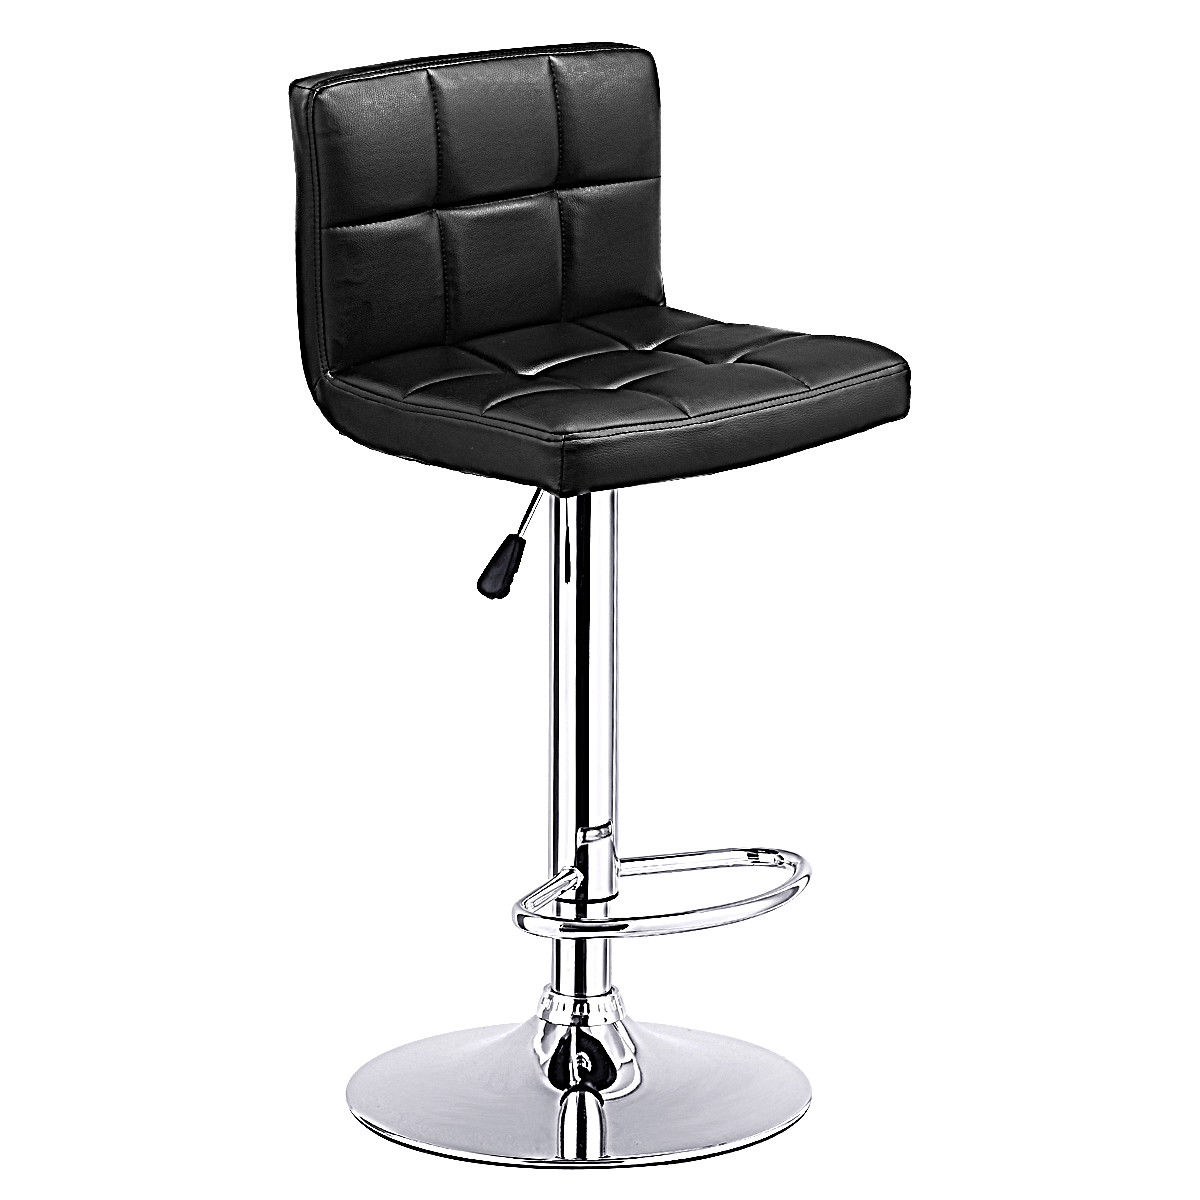 Costway 1 PC Bar Stool Swivel Adjustable PU Leather Barstools Bistro Pub Chair Black